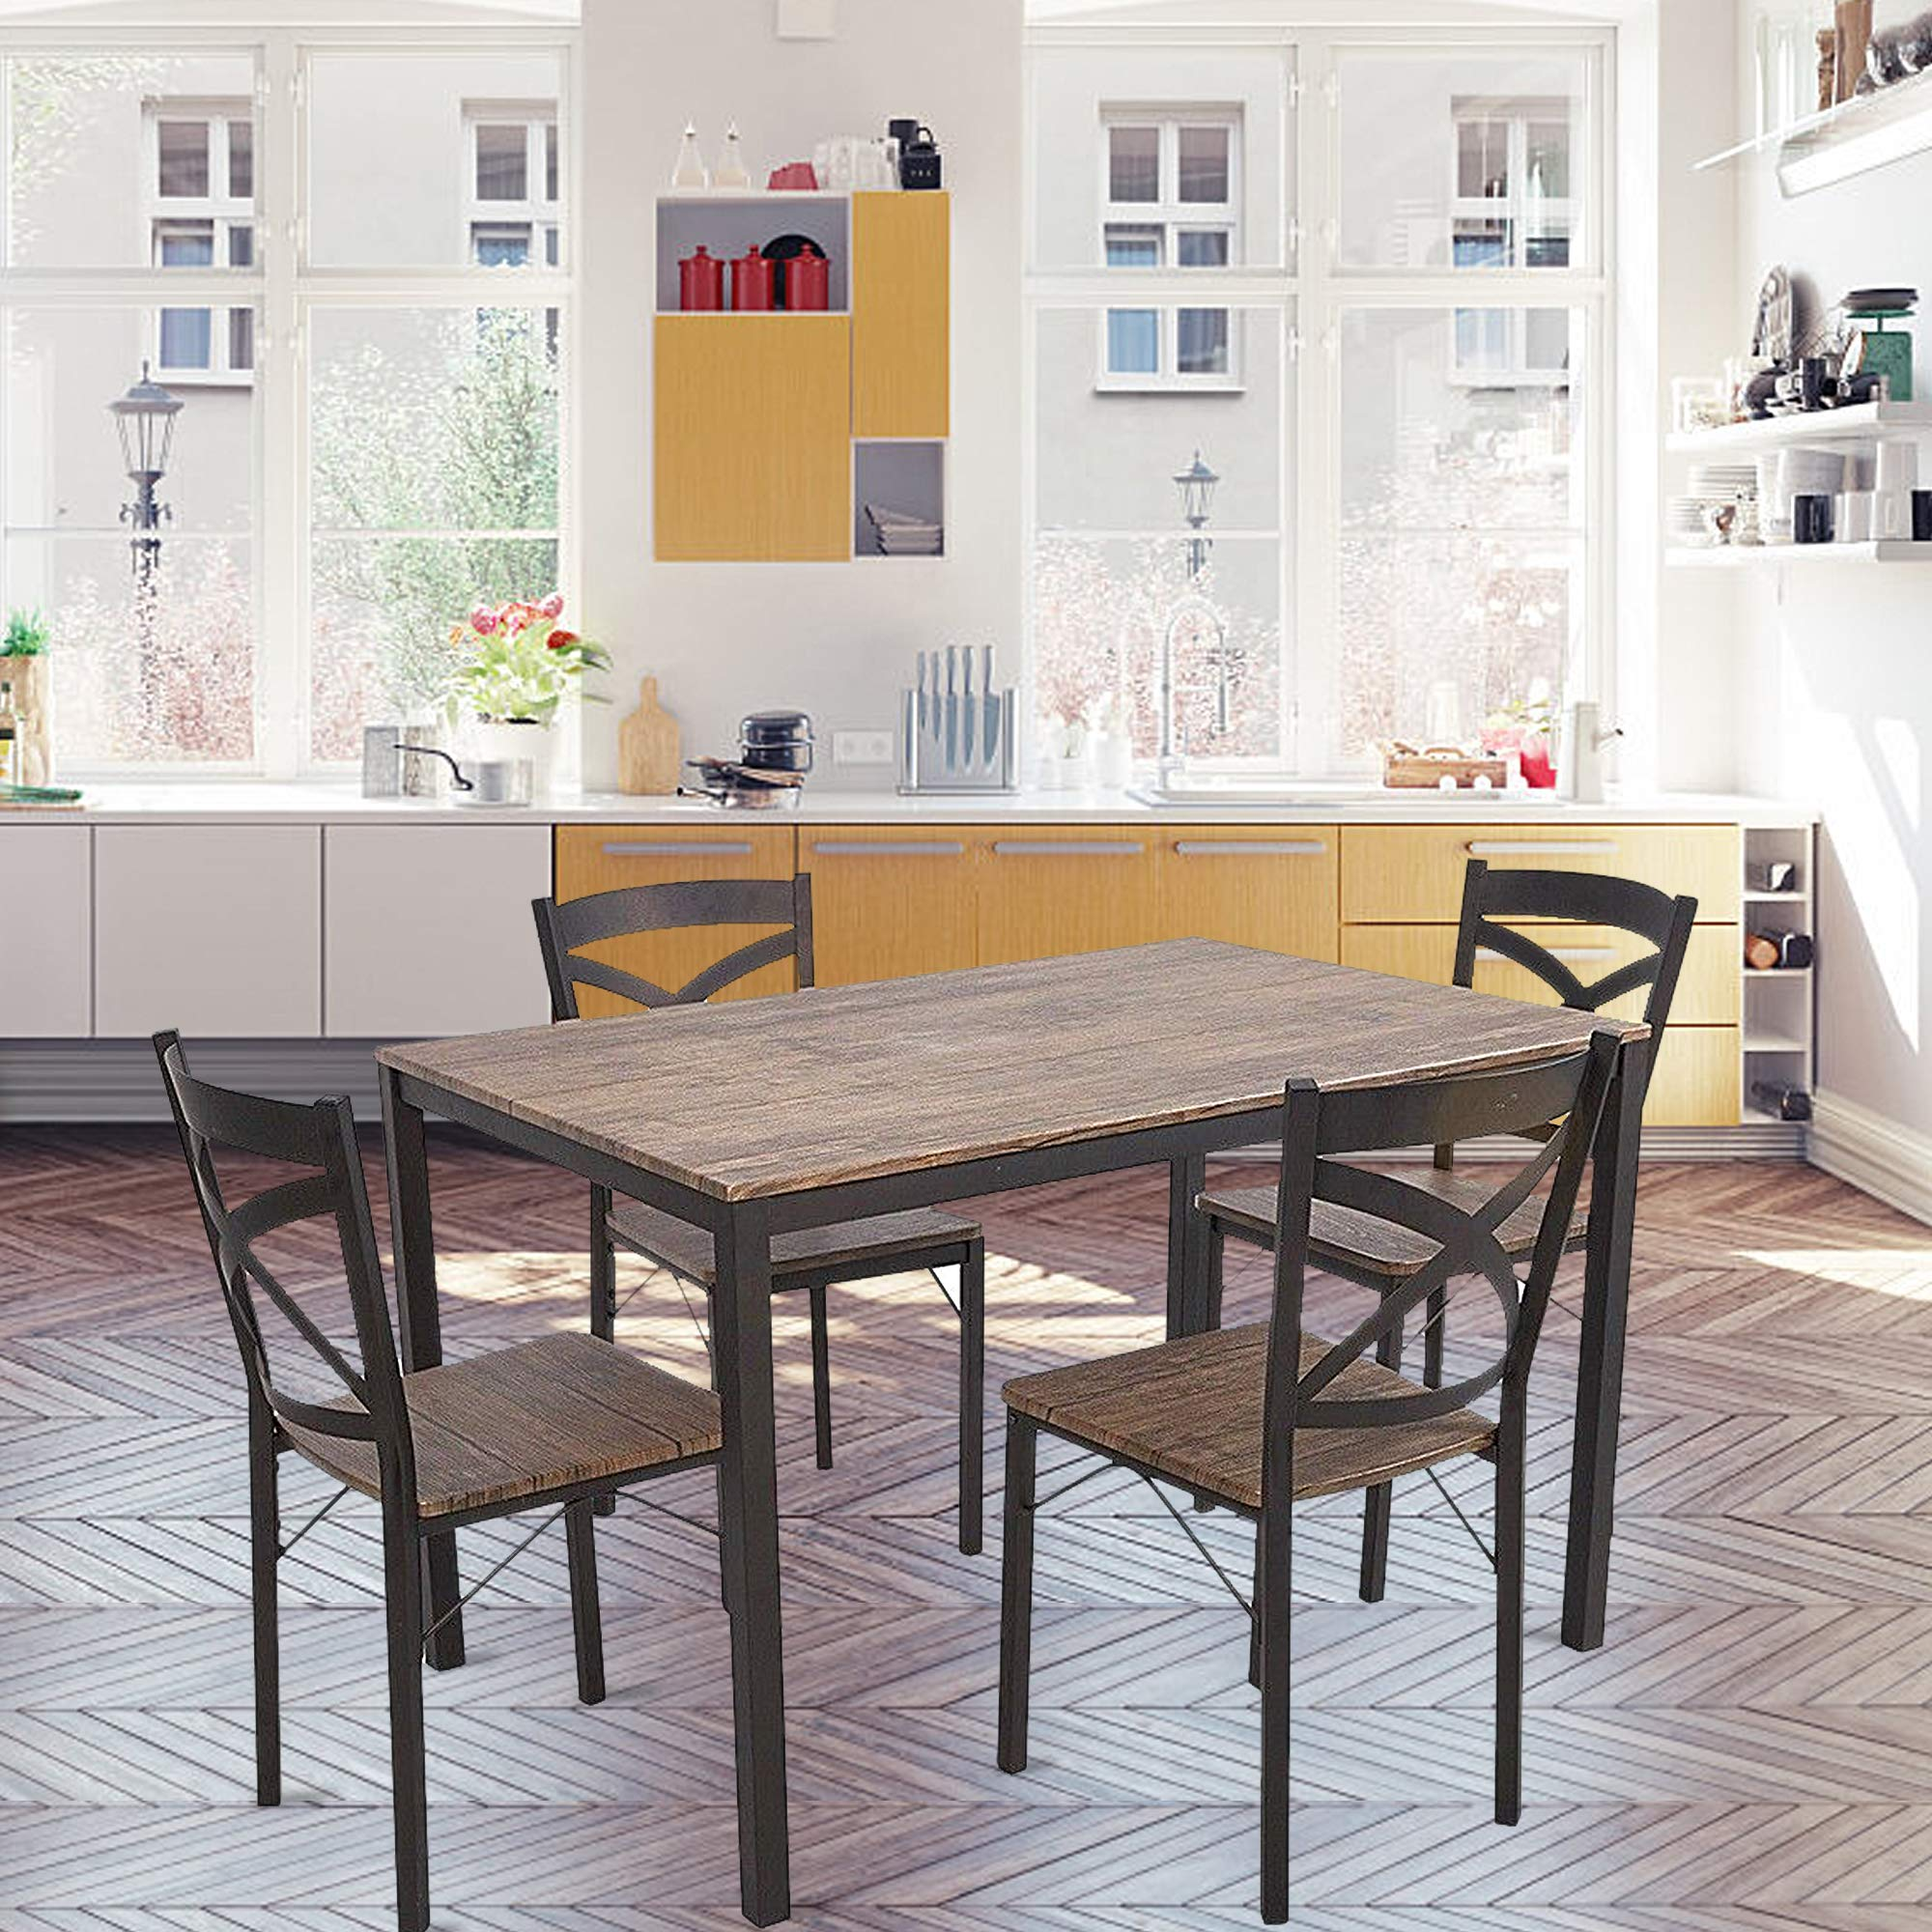 Dporticus 5-Piece Dining Set Industrial Style Wooden Kitchen Table and Chairs with Metal Legs- Espresso by Dporticus (Image #3)